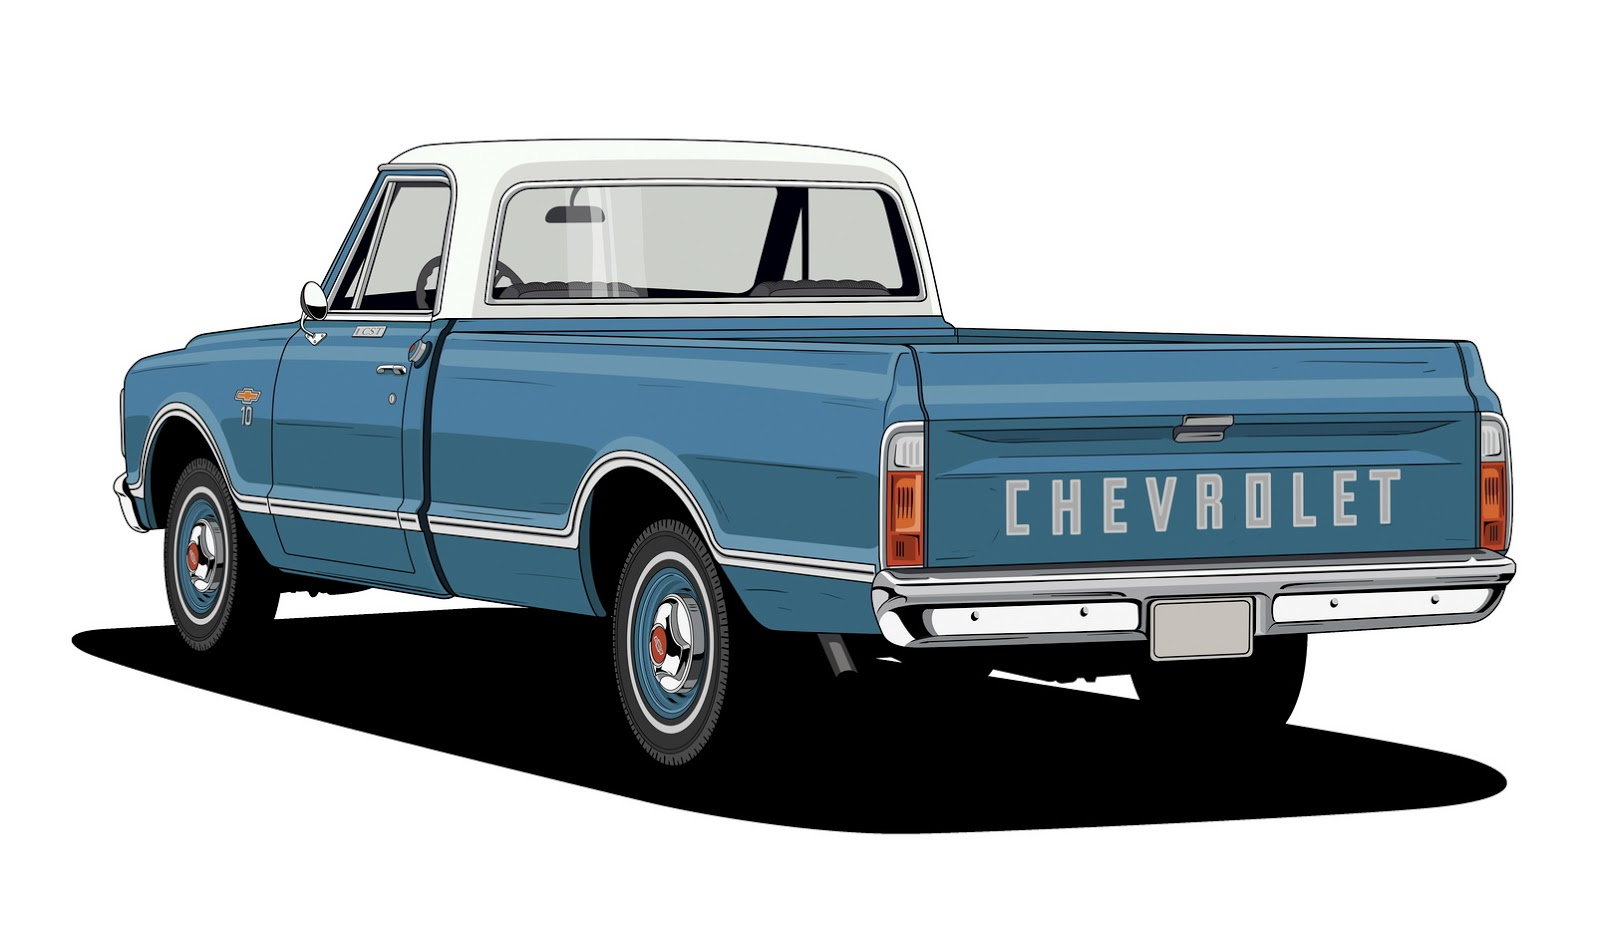 chevy-100yrs-iconic-designs-12